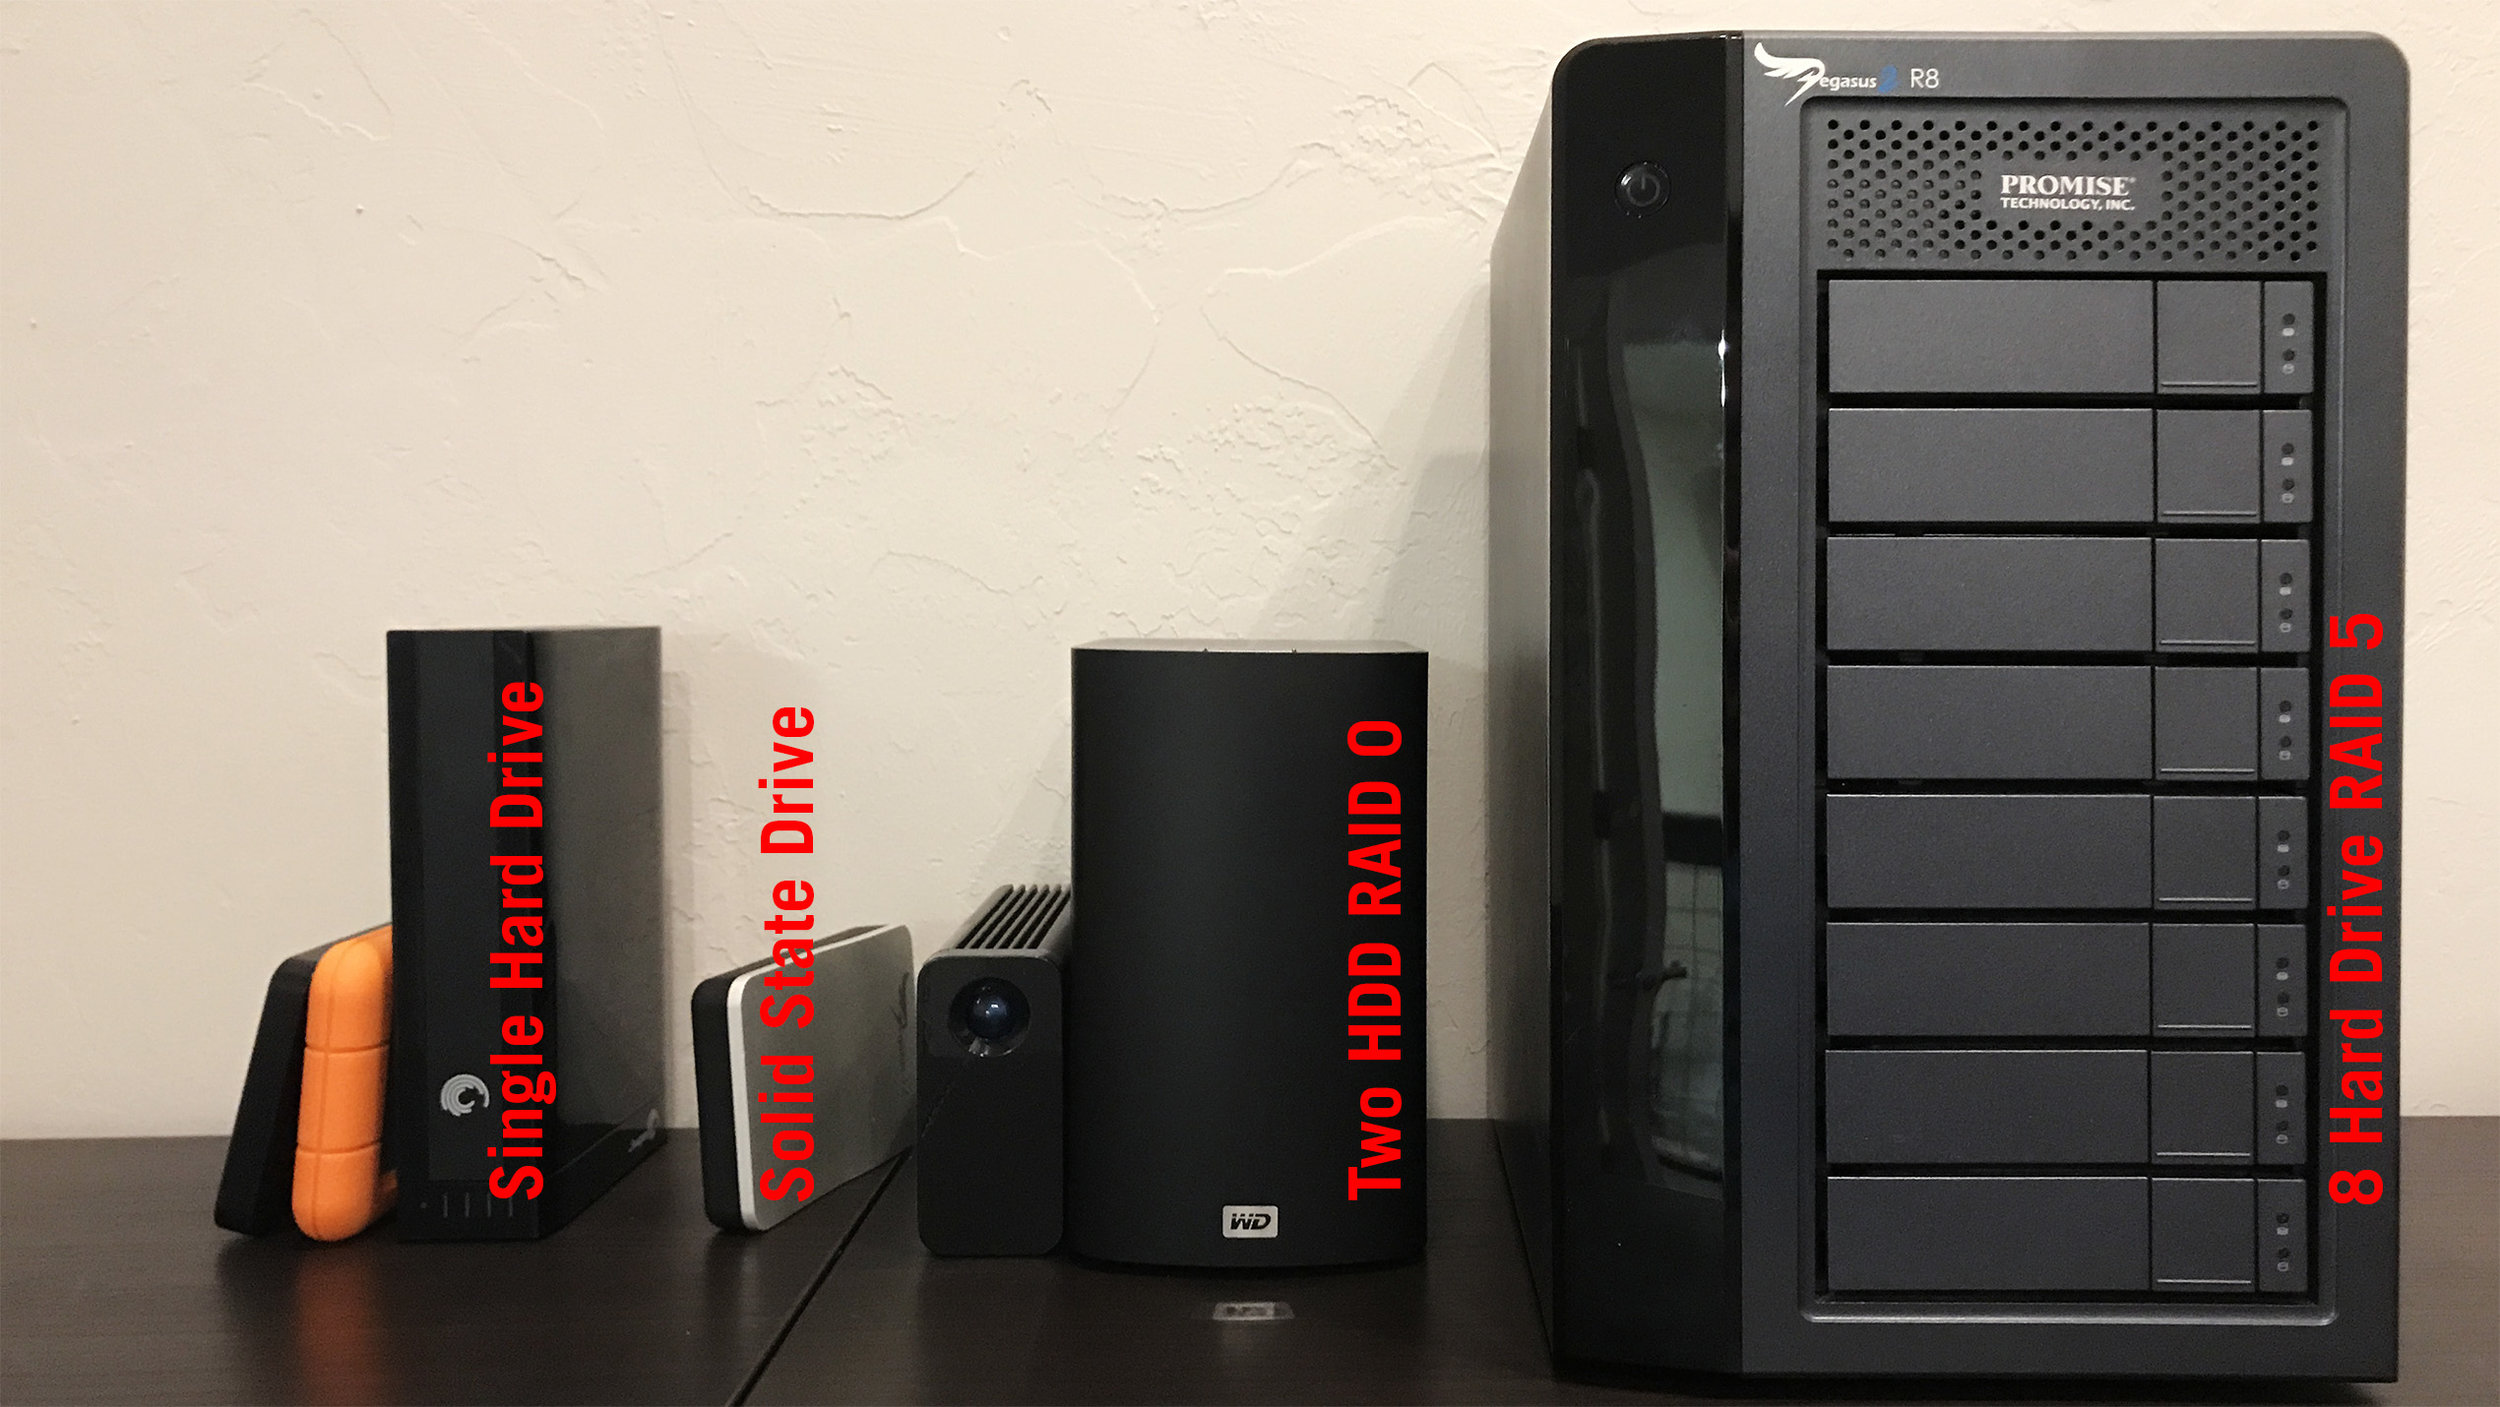 Various external storage options for video, including single hard drives, single SSDs, dual hard drive RAID 0s, and an 8 hard drive RAID 5.